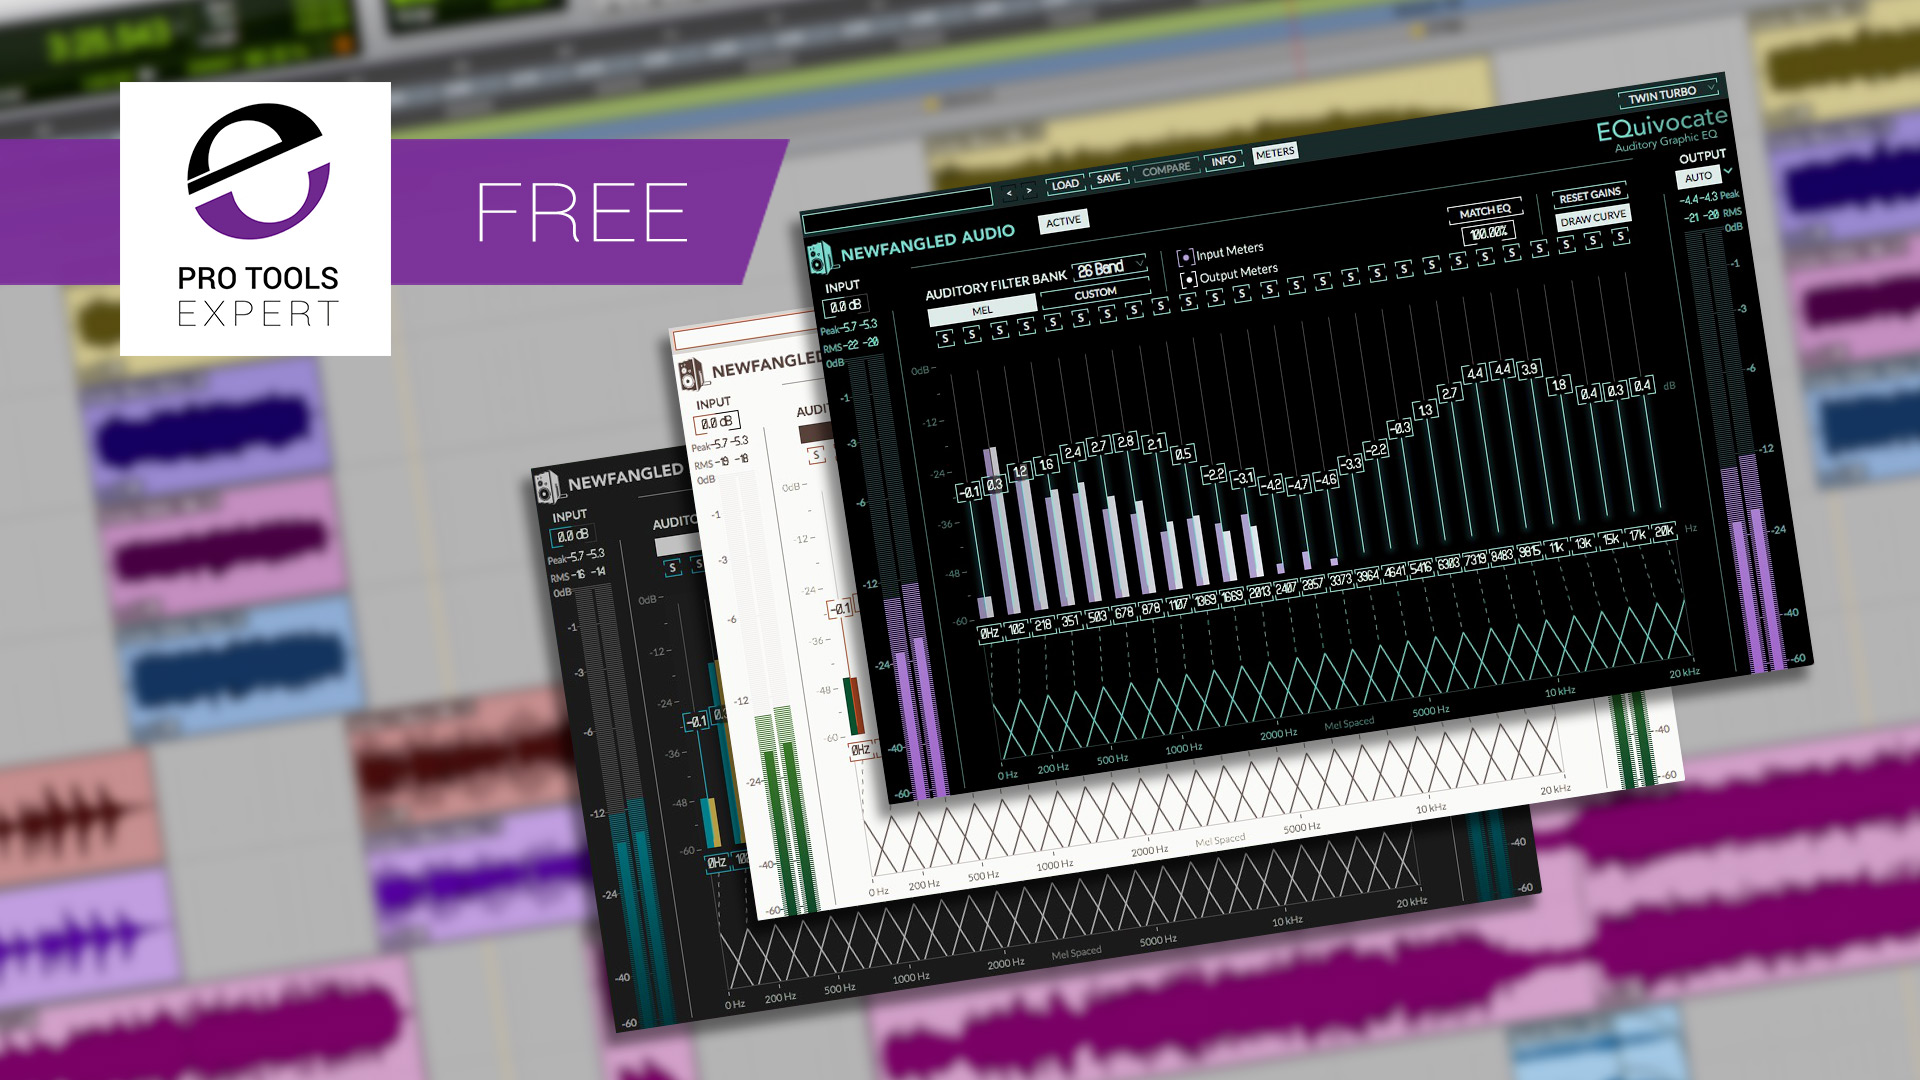 free-eq-plug-in-EQuivocate-By-Newfangled-Audio-&-Eventide.jpg